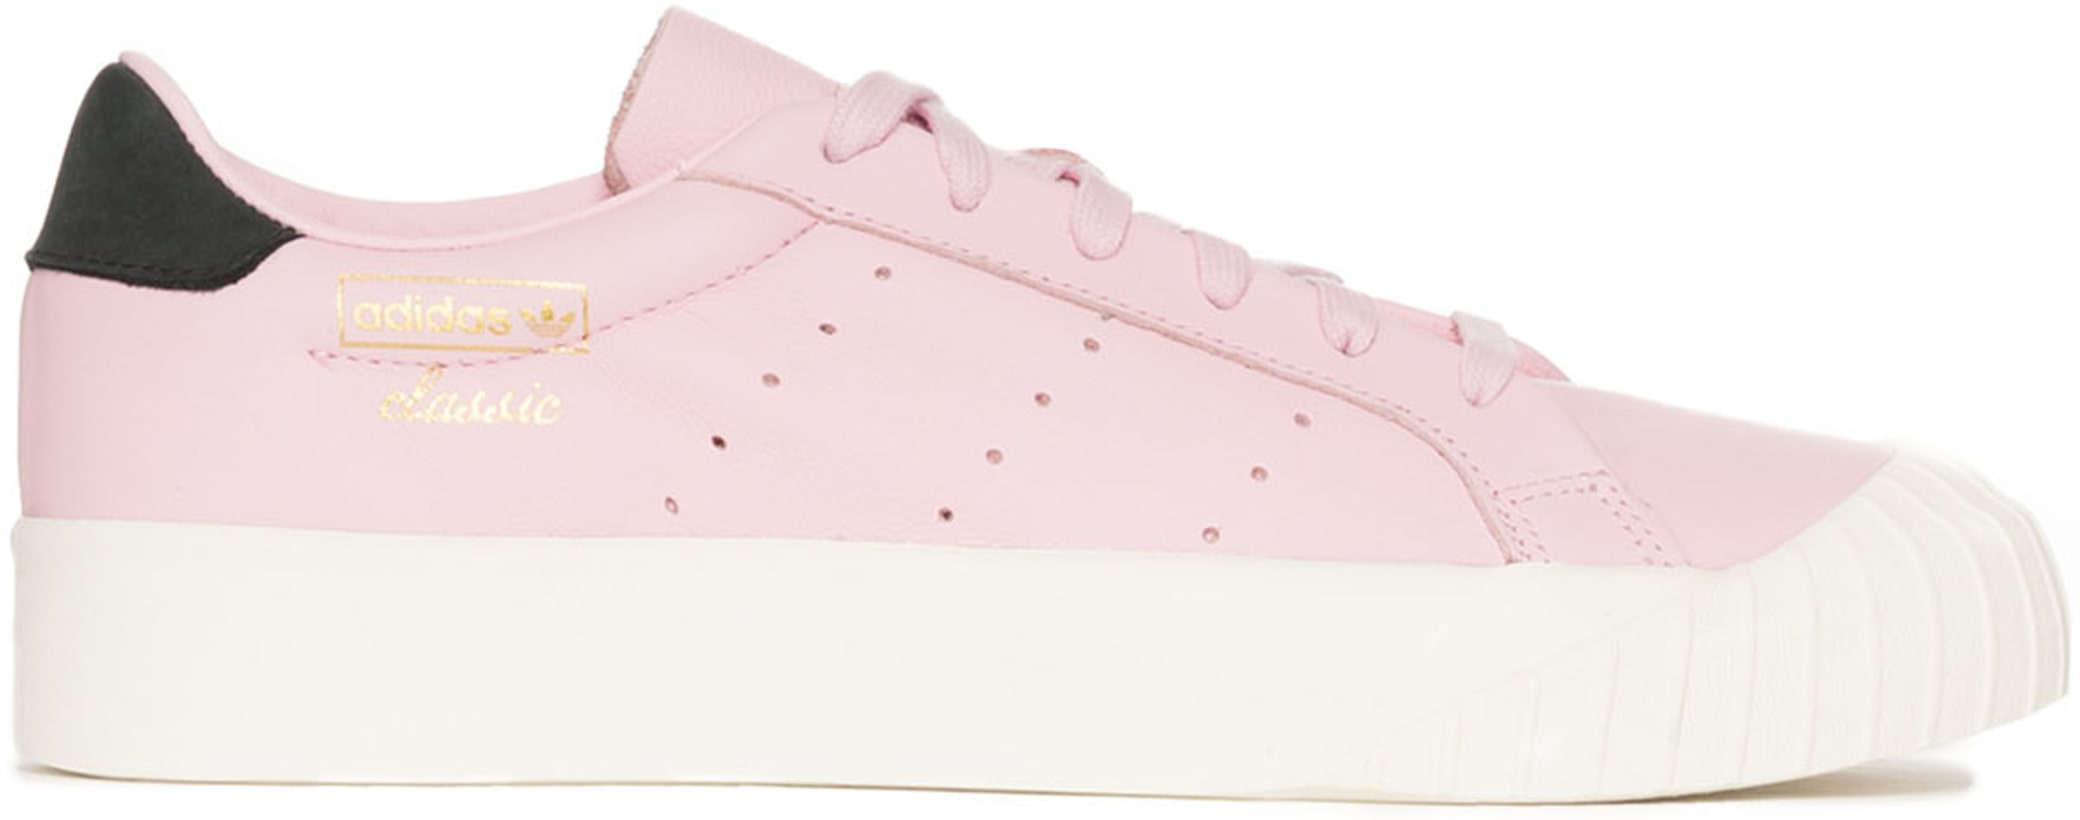 newest 83986 42dc2 adidas Originals. Everyn - Wonder Pink Wonder ...